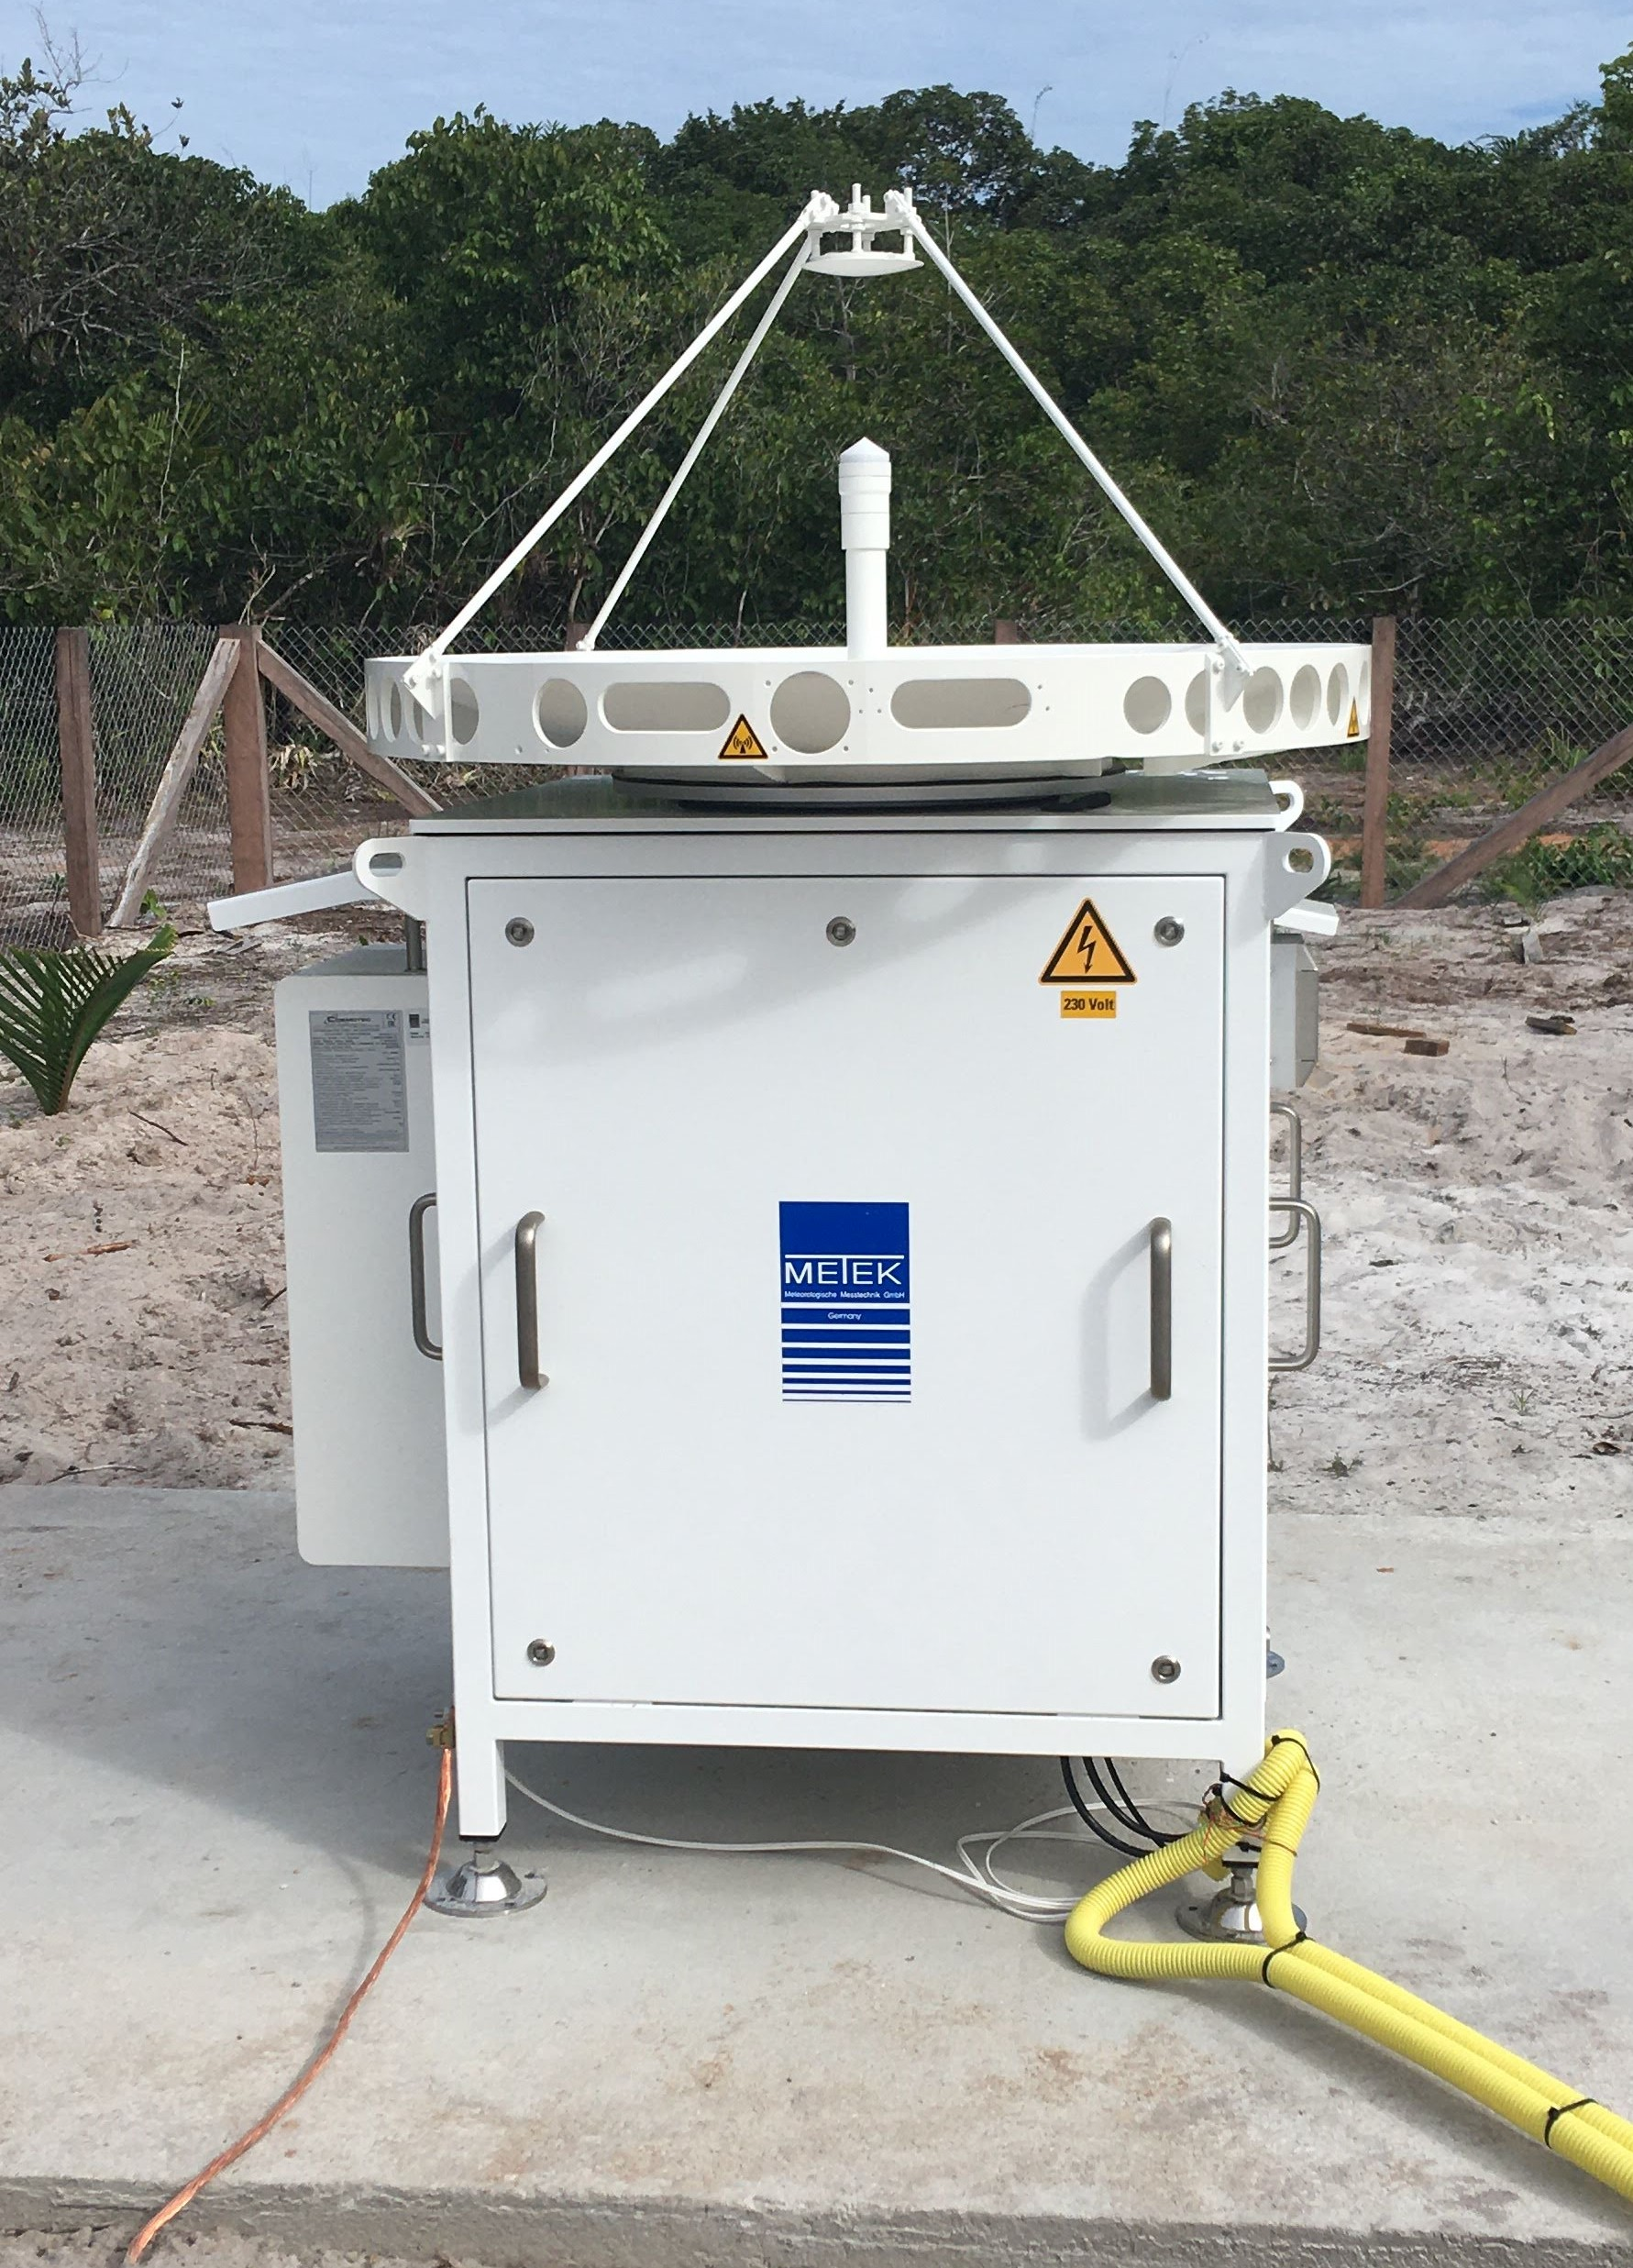 Closer view of the MIRA radar with the antenna and the small container. Inside the yellow tubes are several cables that connect the radar to the research container and the power source.